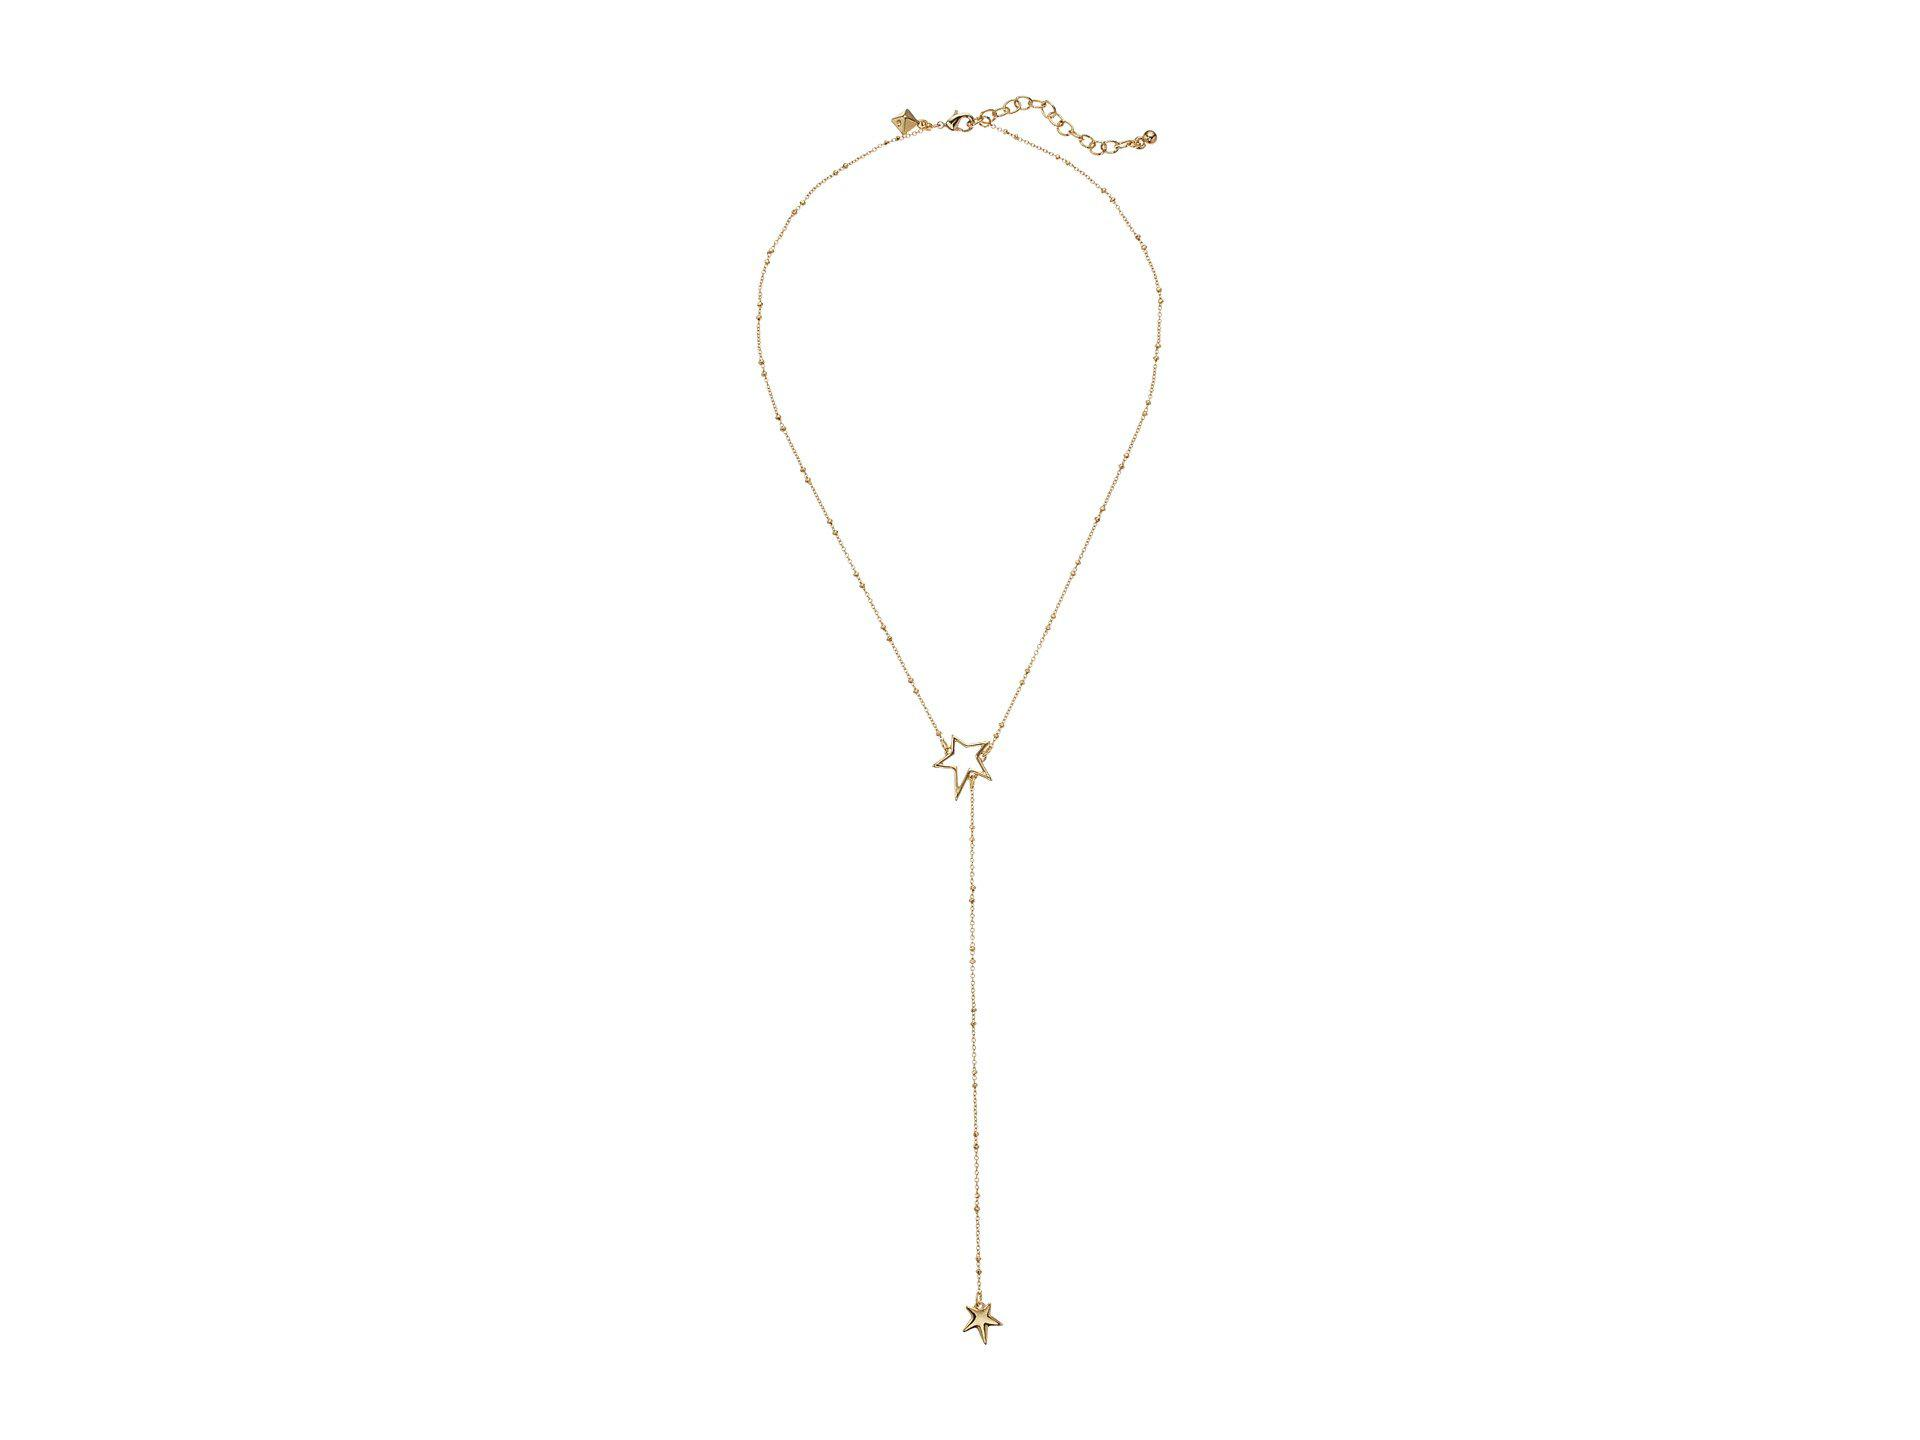 Rebecca Minkoff Heart Lariat Necklace in Metallic Gold